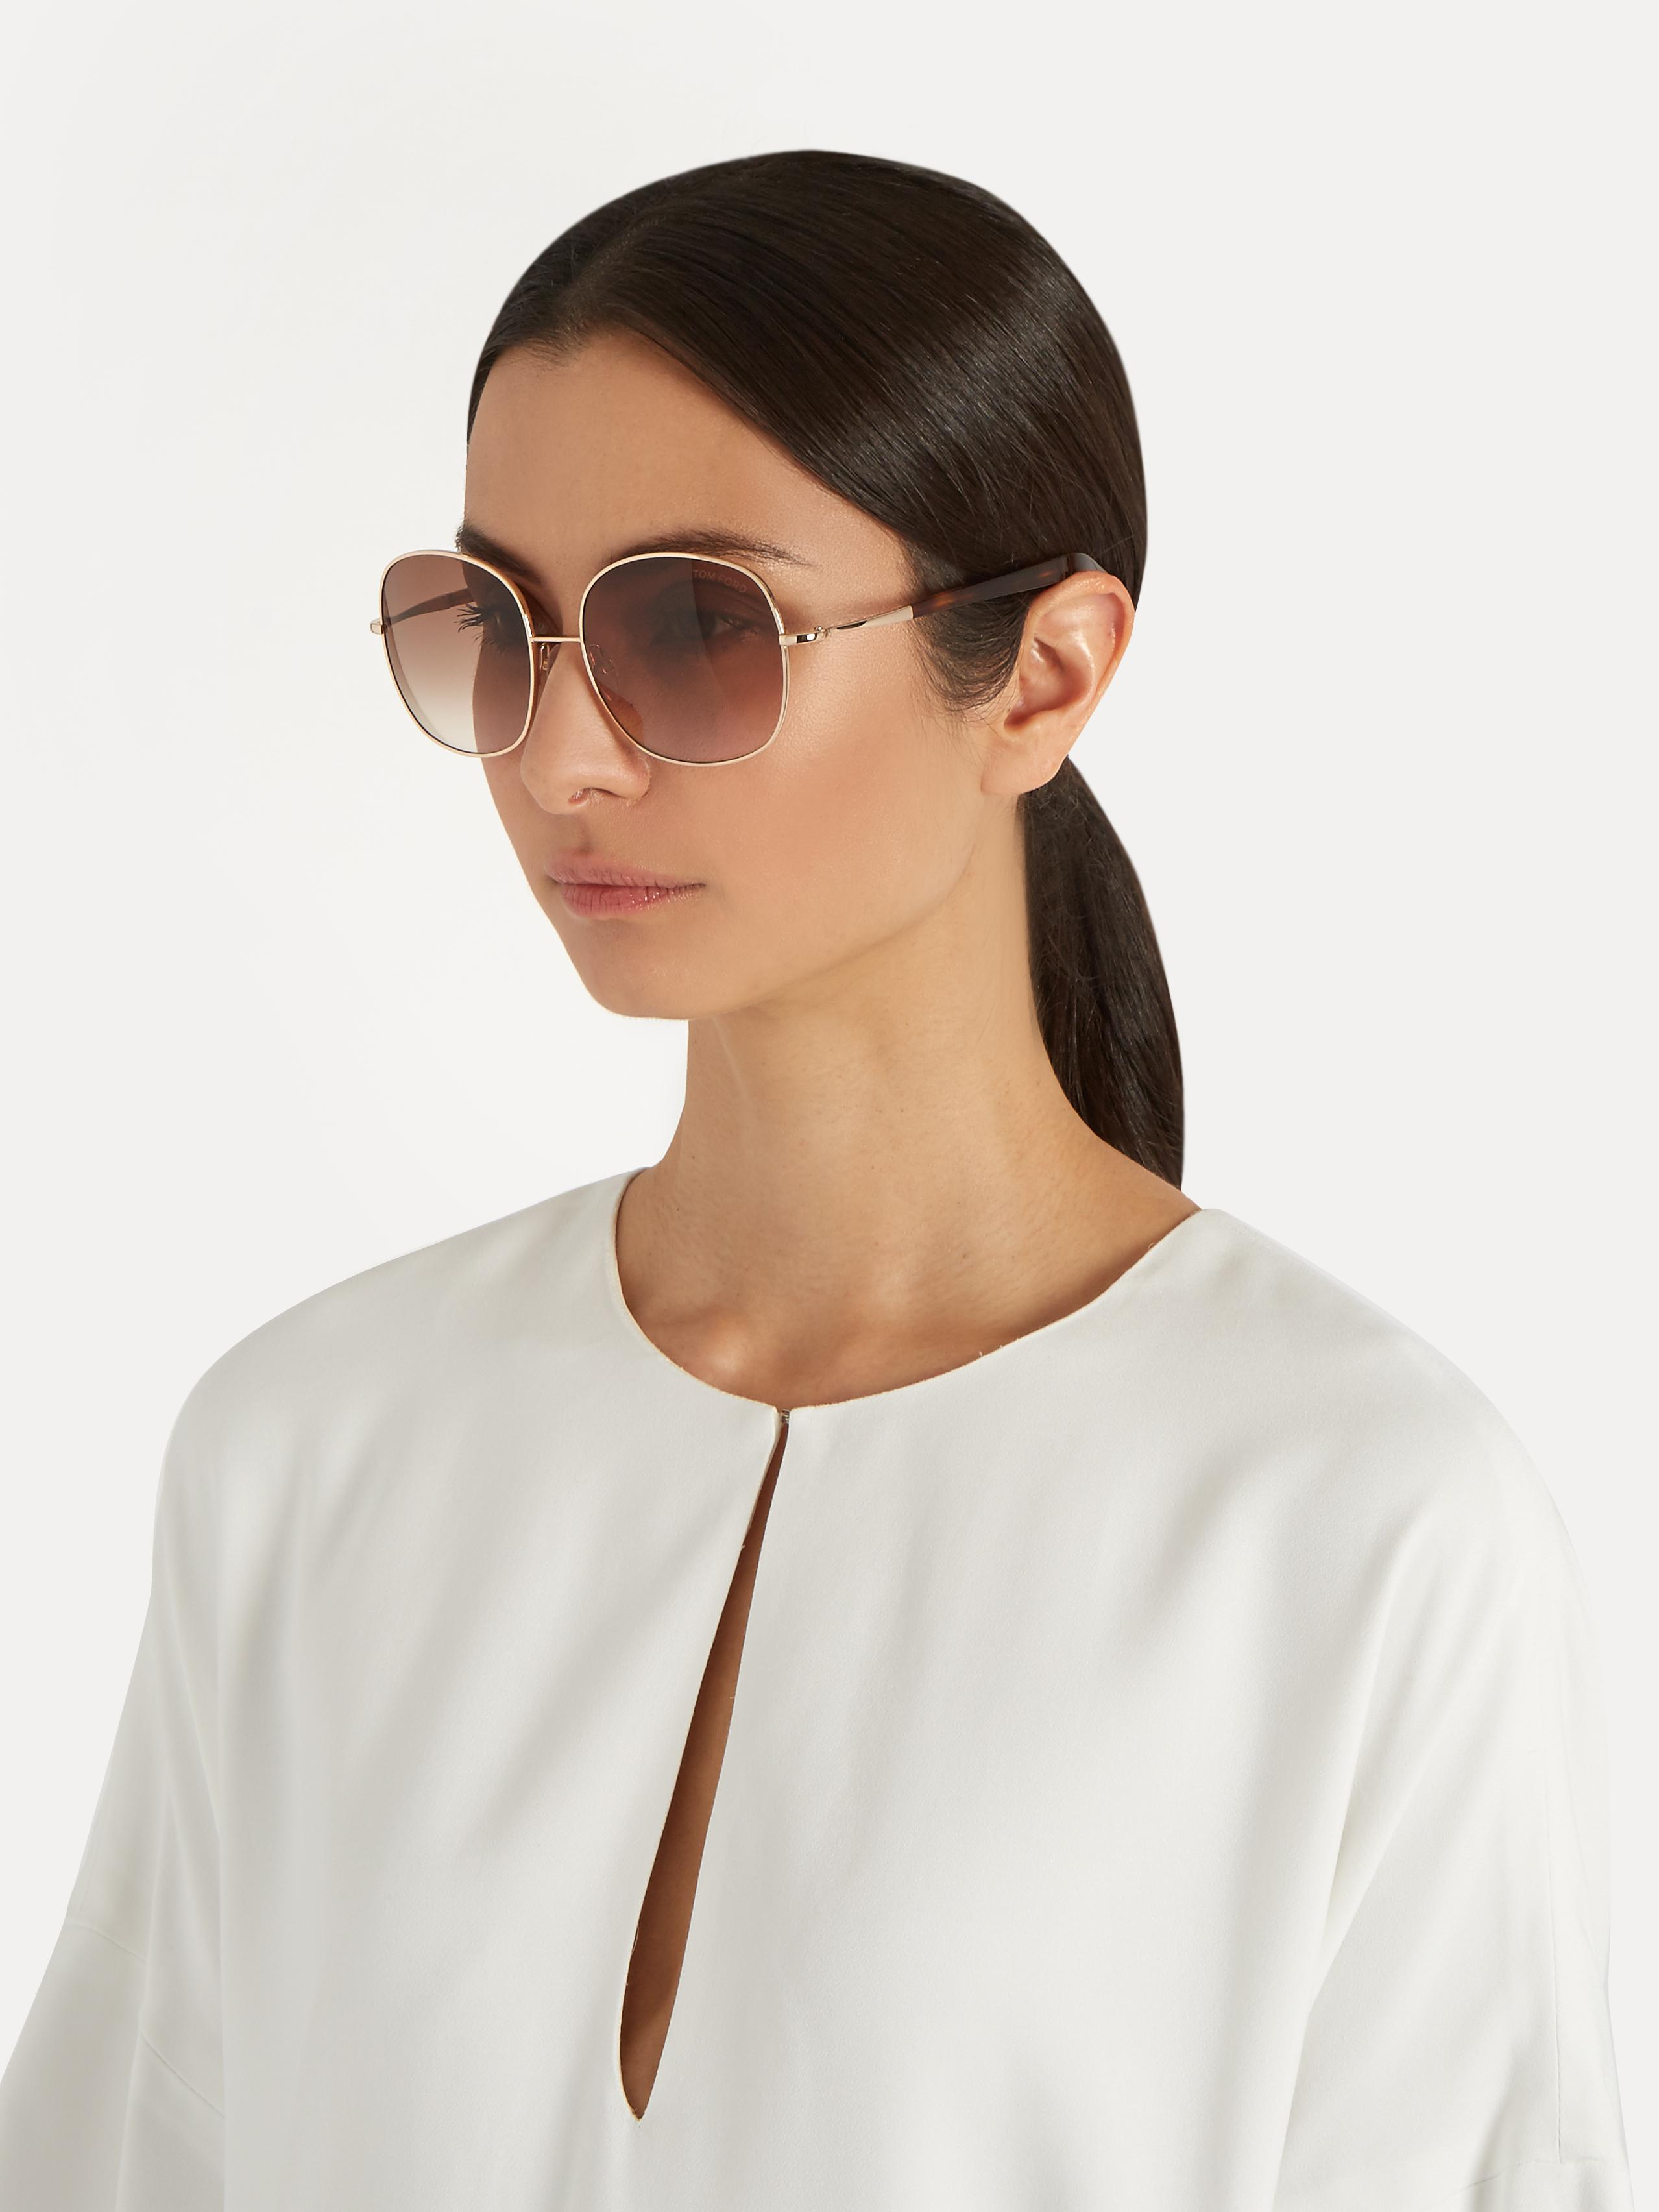 Tom Ford Georgina sunglasses 9nvZp5lb2